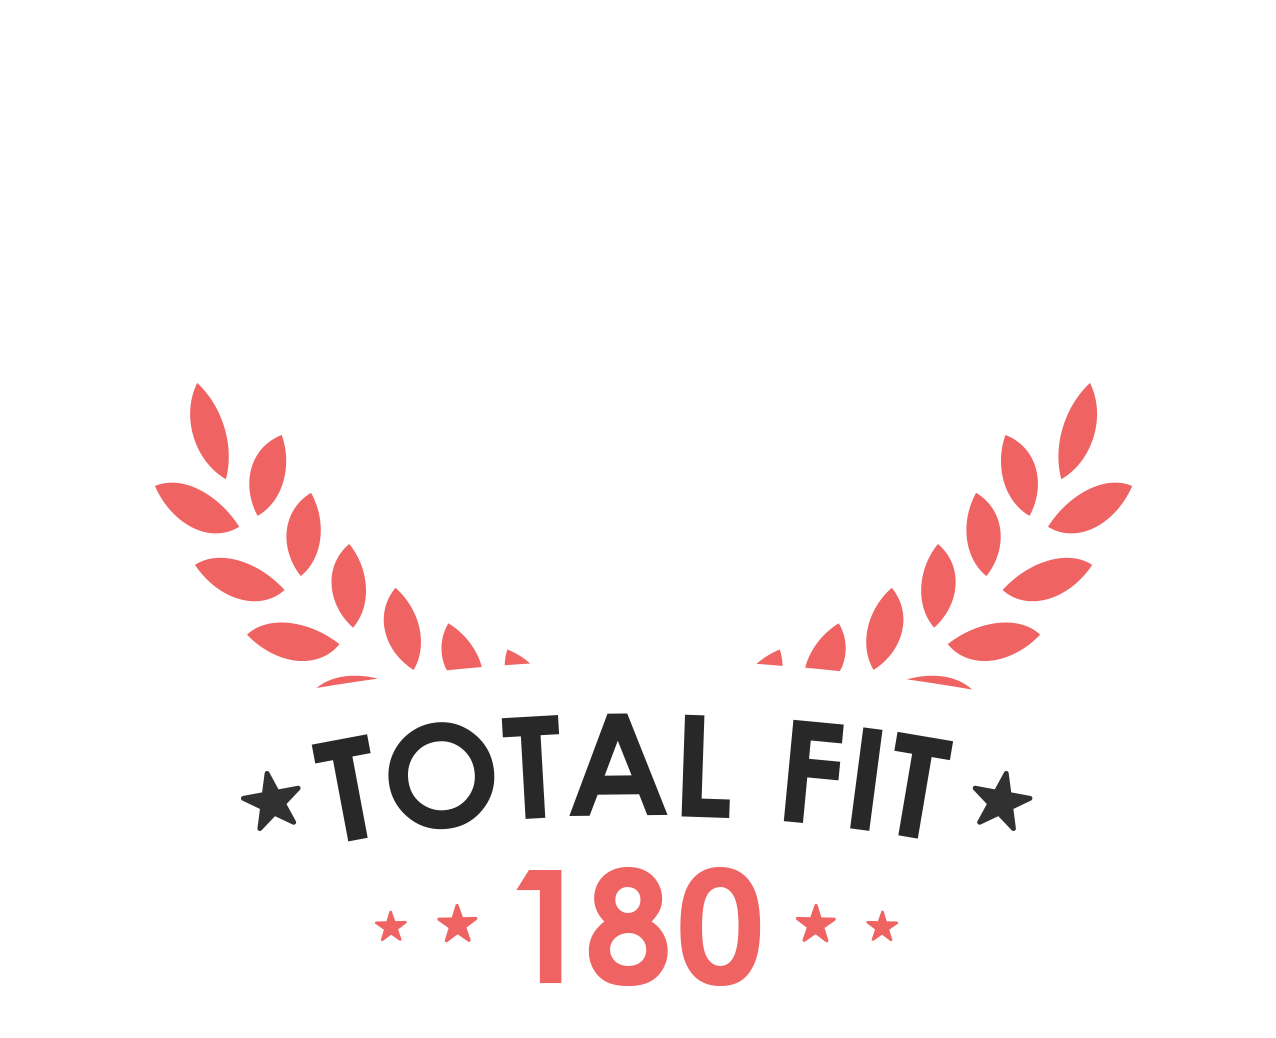 Total Fit 180